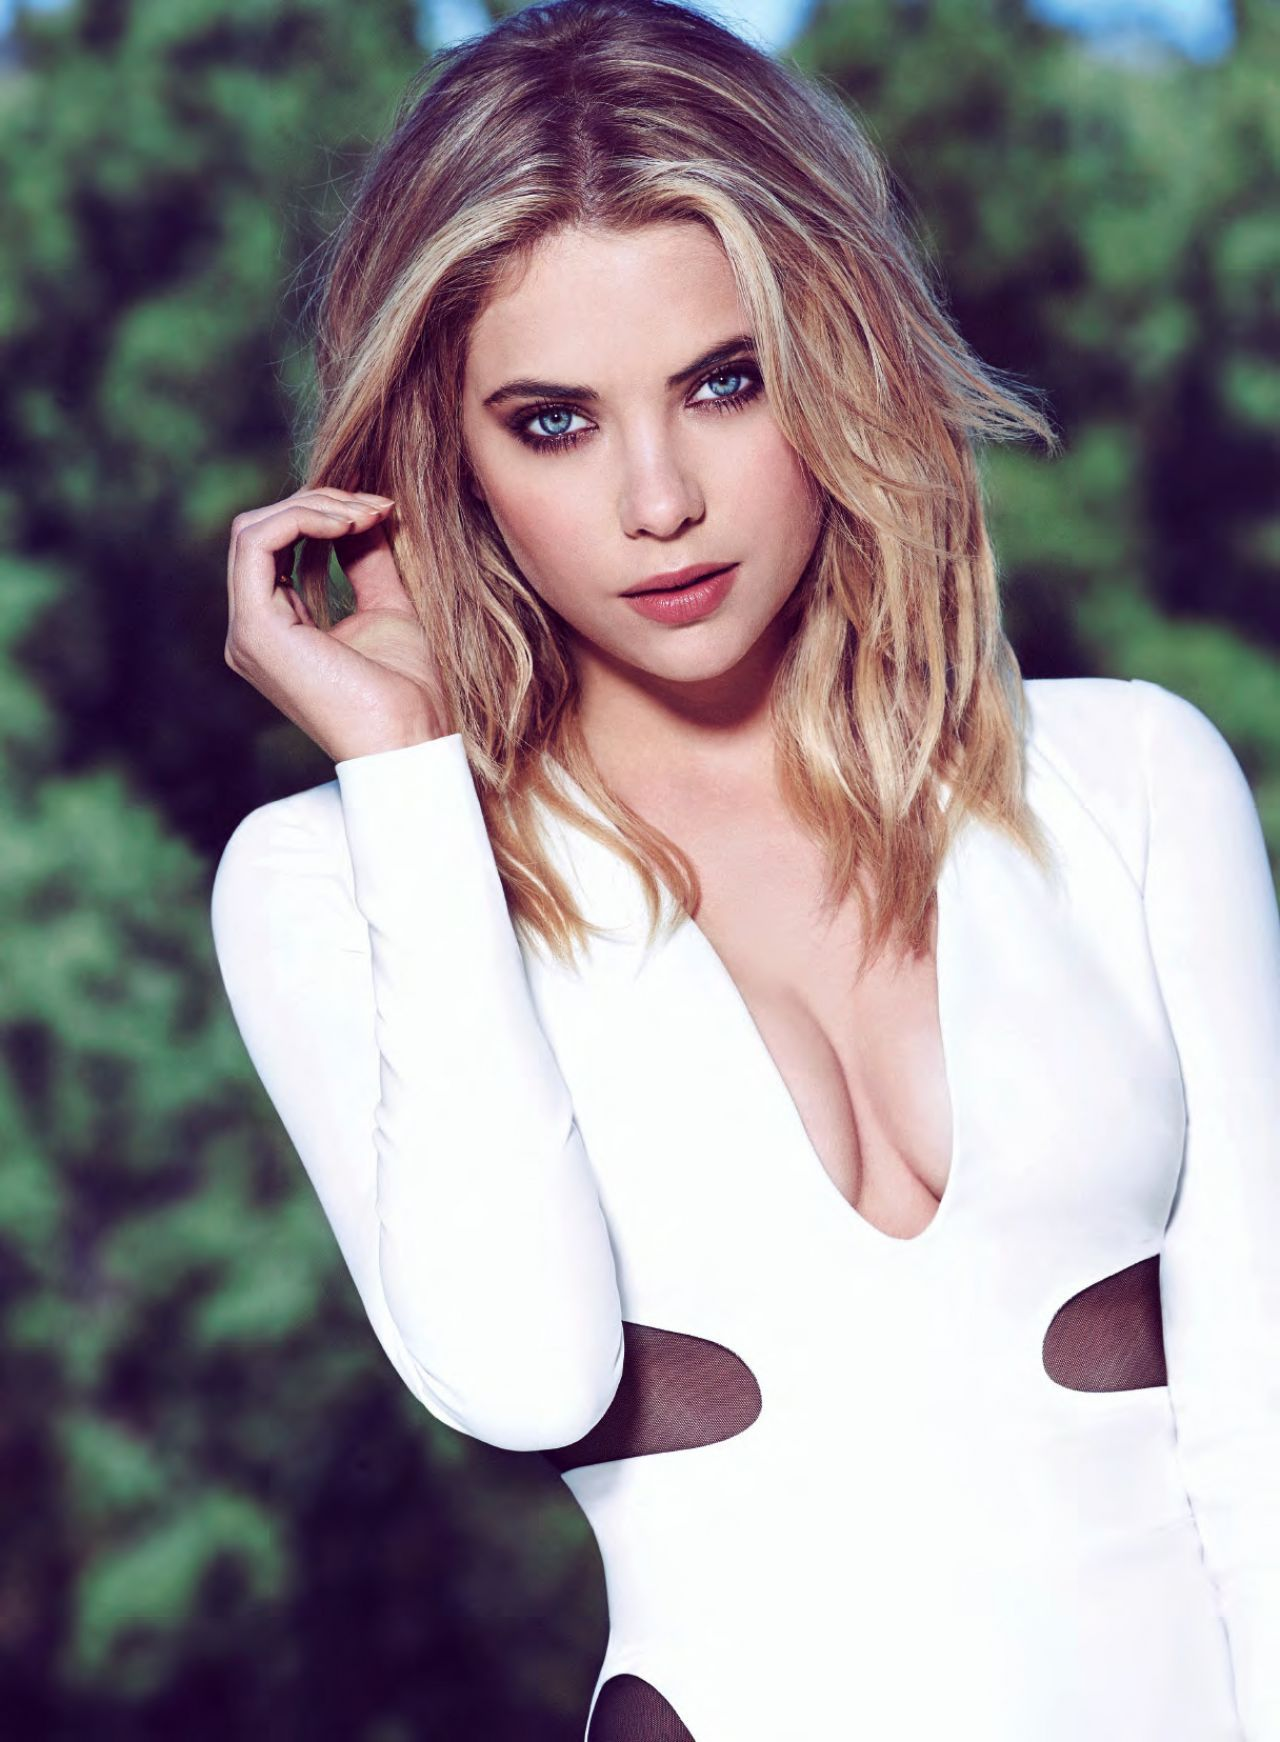 Ashley Benson nudes (38 photo), photo Sideboobs, Twitter, swimsuit 2019